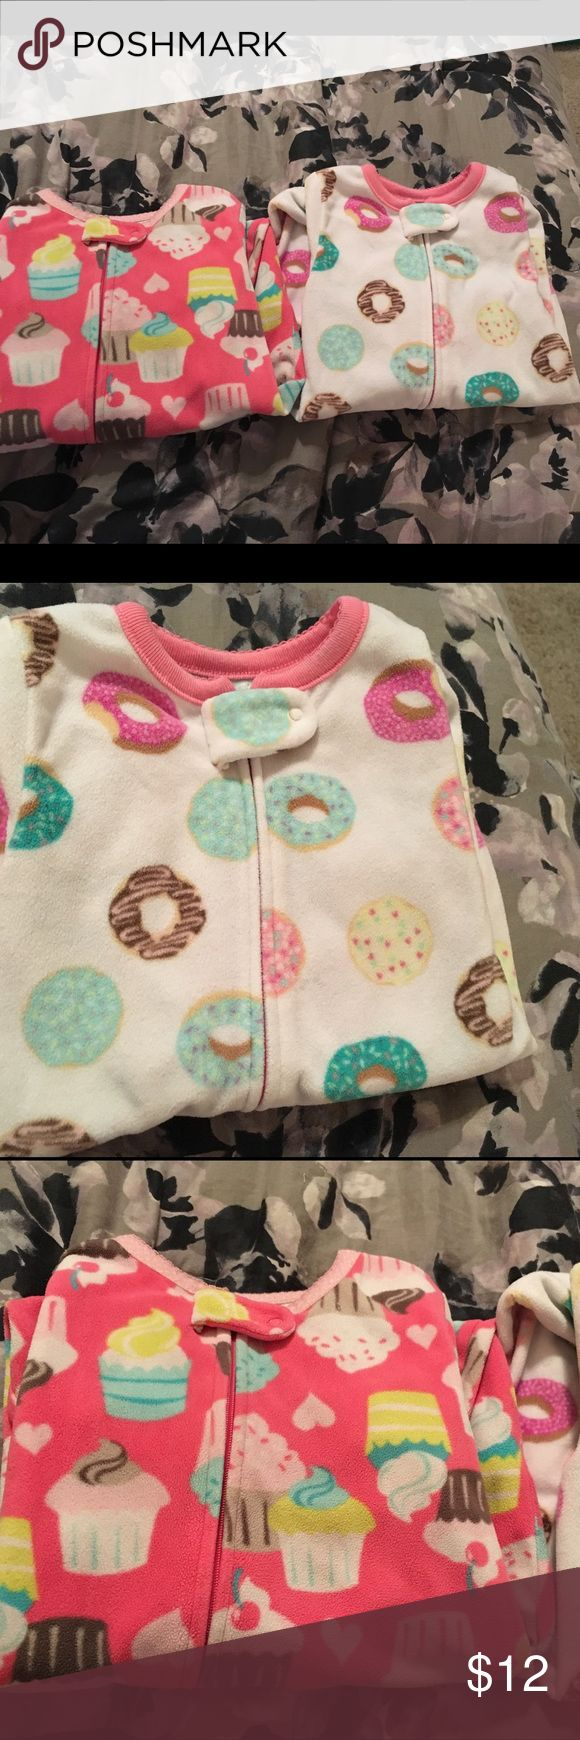 Super cute fleece pjs for Babygirl 2 fleece Babygirl pjs from carters store not Walmart or target. One is cupcake design and one donuts, both size 12m Carter's Pajamas Pajama Sets